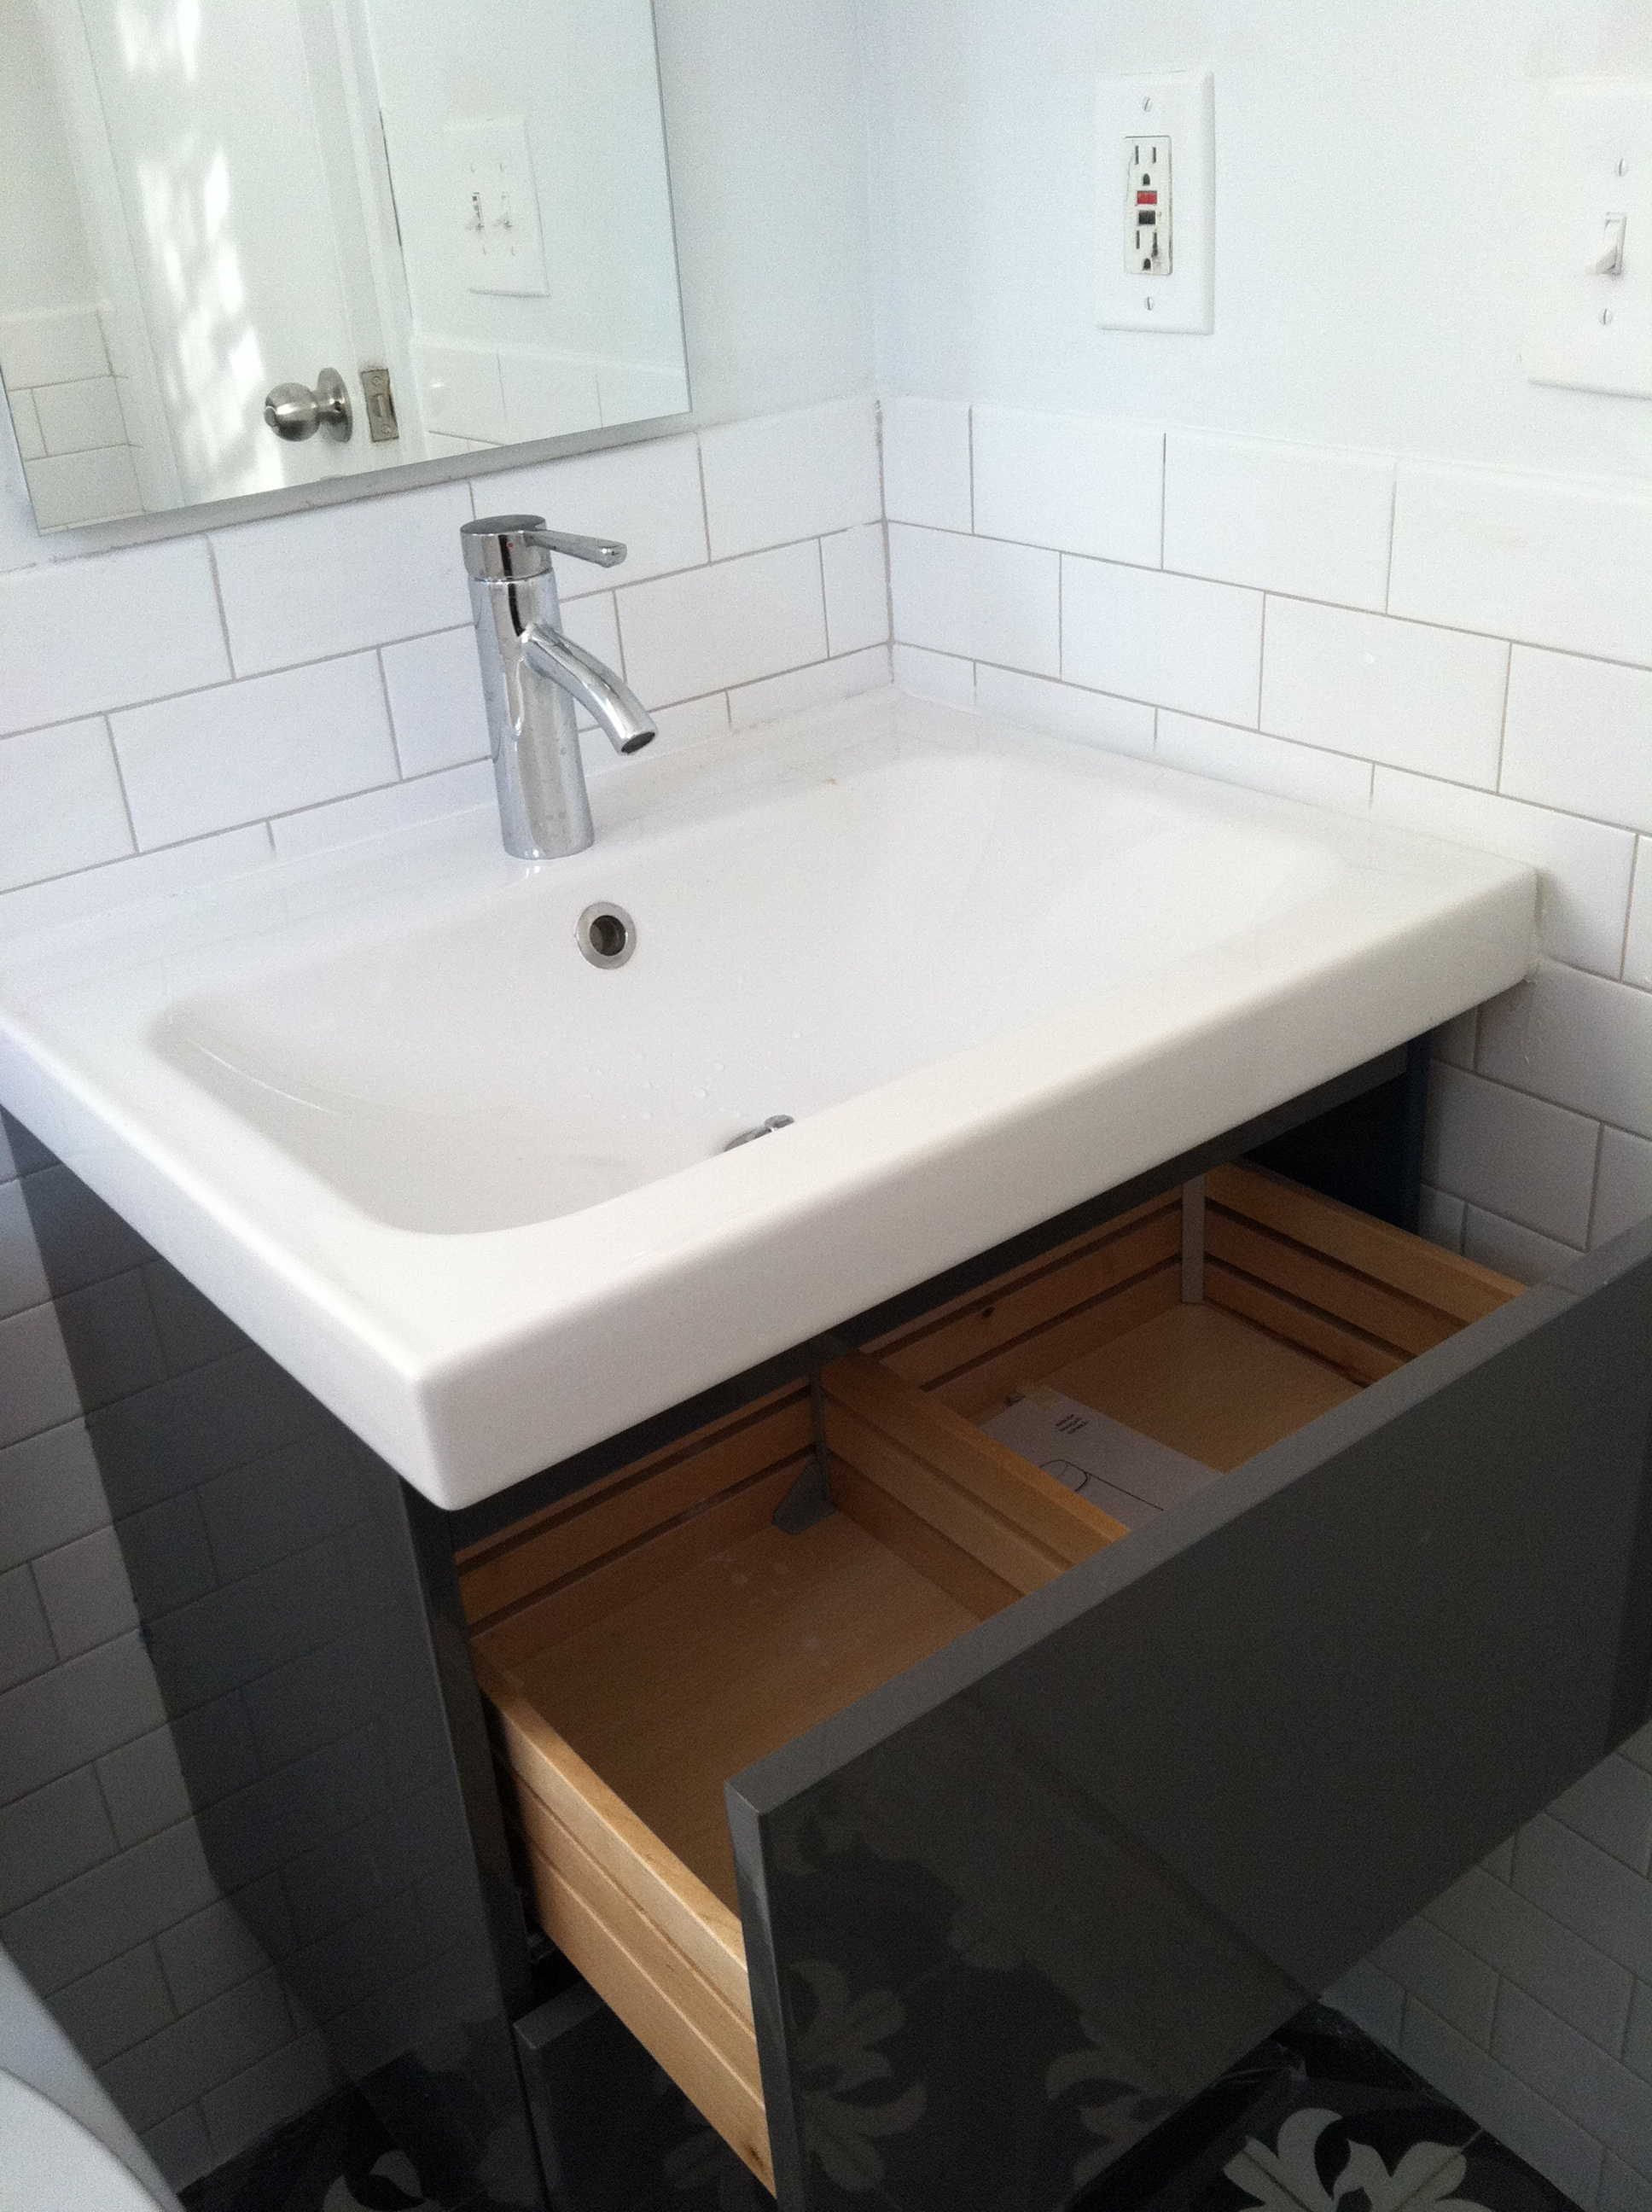 Ikea bathroom vanity loisaida nest - Vanities for small bathrooms ikea ...